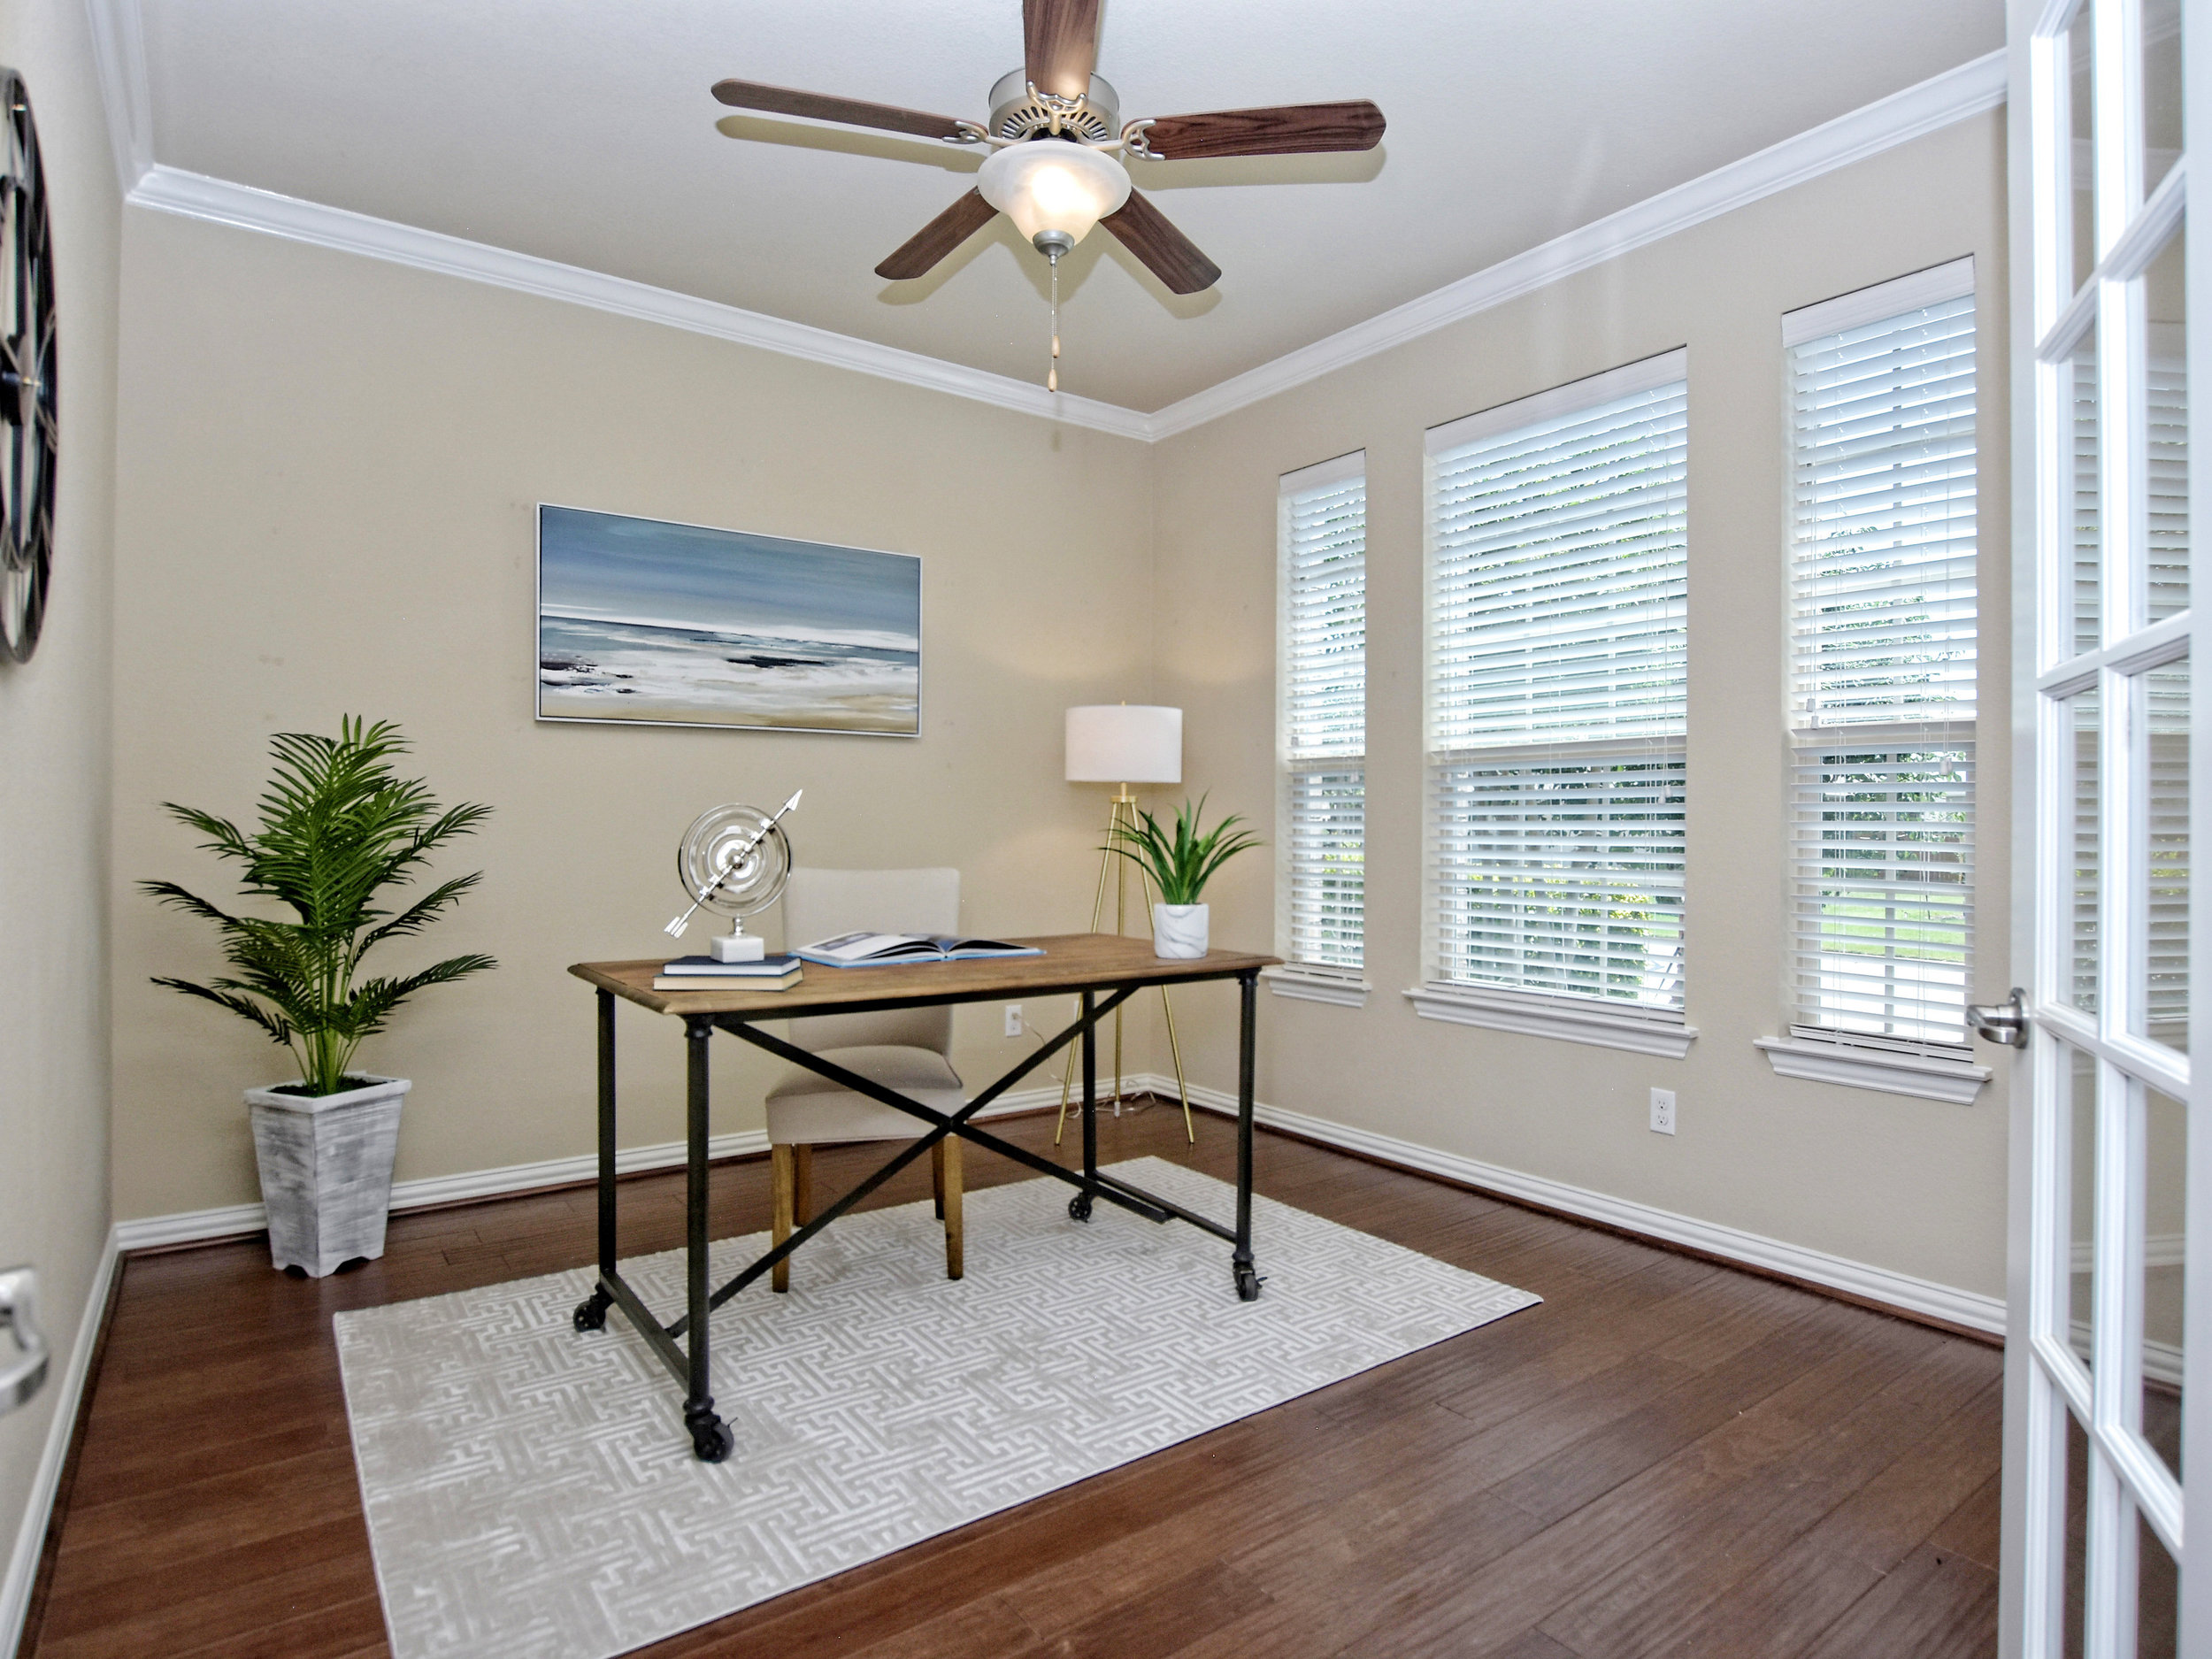 Staging by Debut Homes. Photography by Shutterbug.